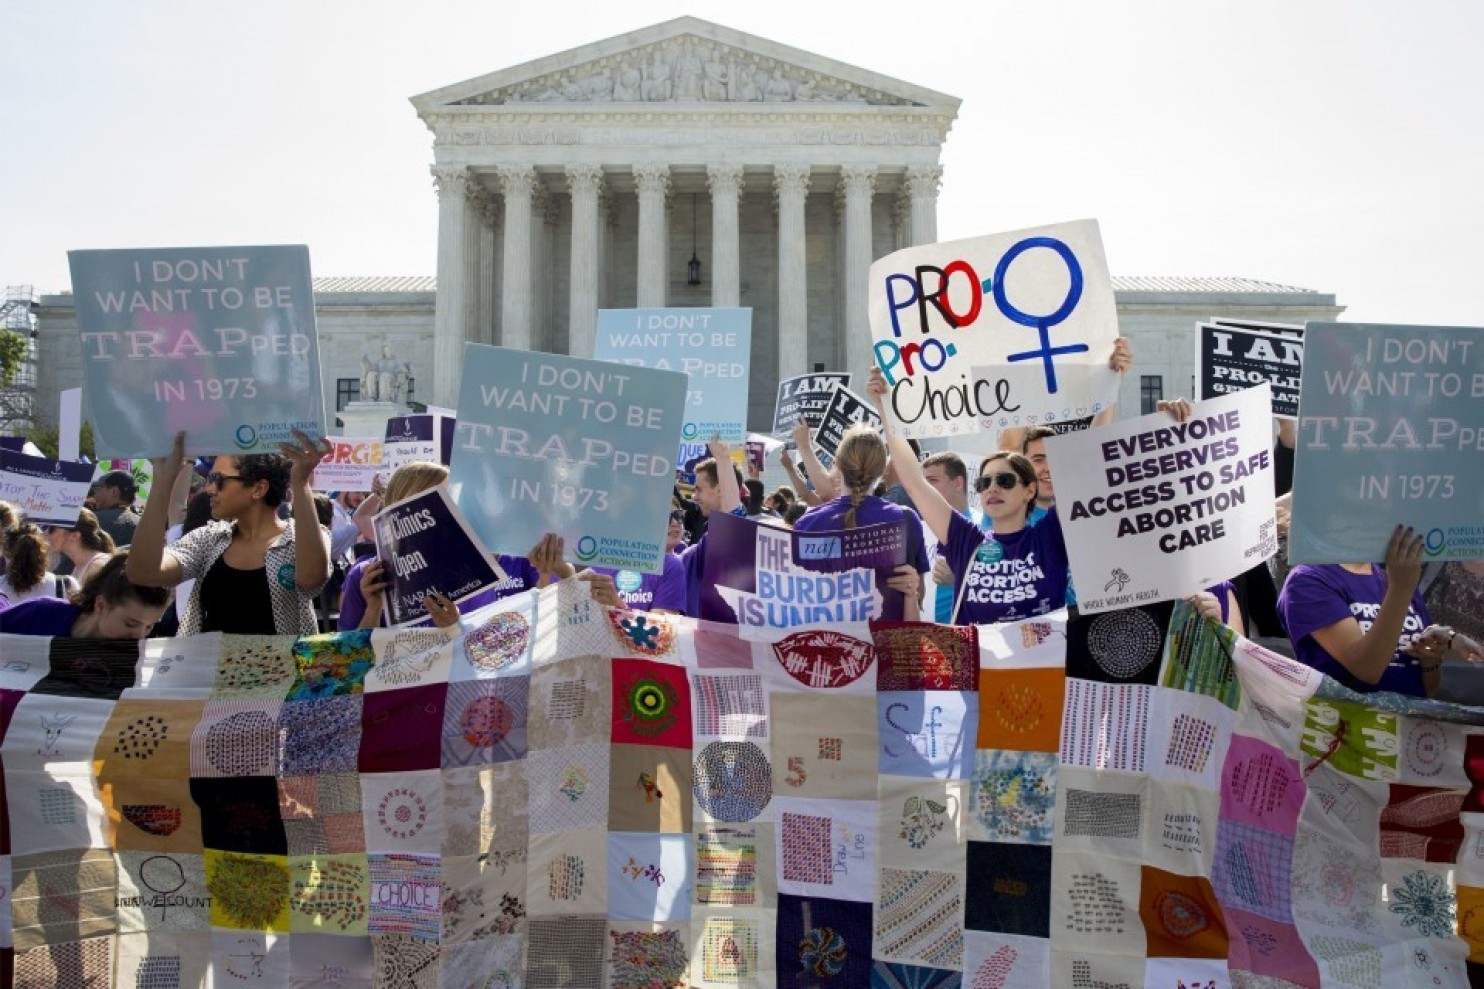 Pro-choice activist rally outside the Supreme Court in June 2016 before the court ruling on the Whole Womans Health v. Hellerstedt that imposed heavy restrictions on abortion clinics in Texas (Michael Reynolds/European Pressphoto Agency)